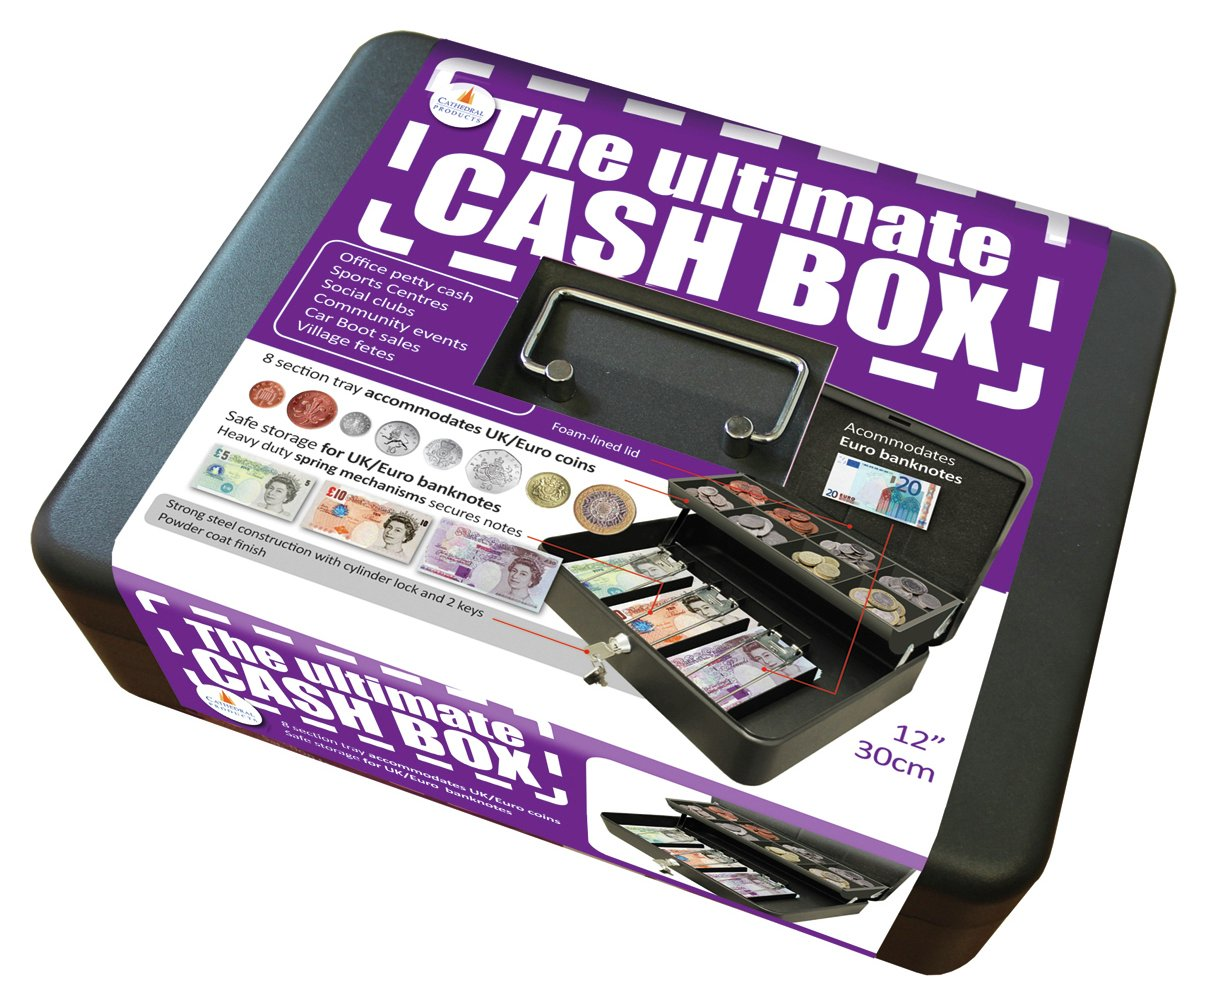 Image of Cathedral Ultimate Cash Box.